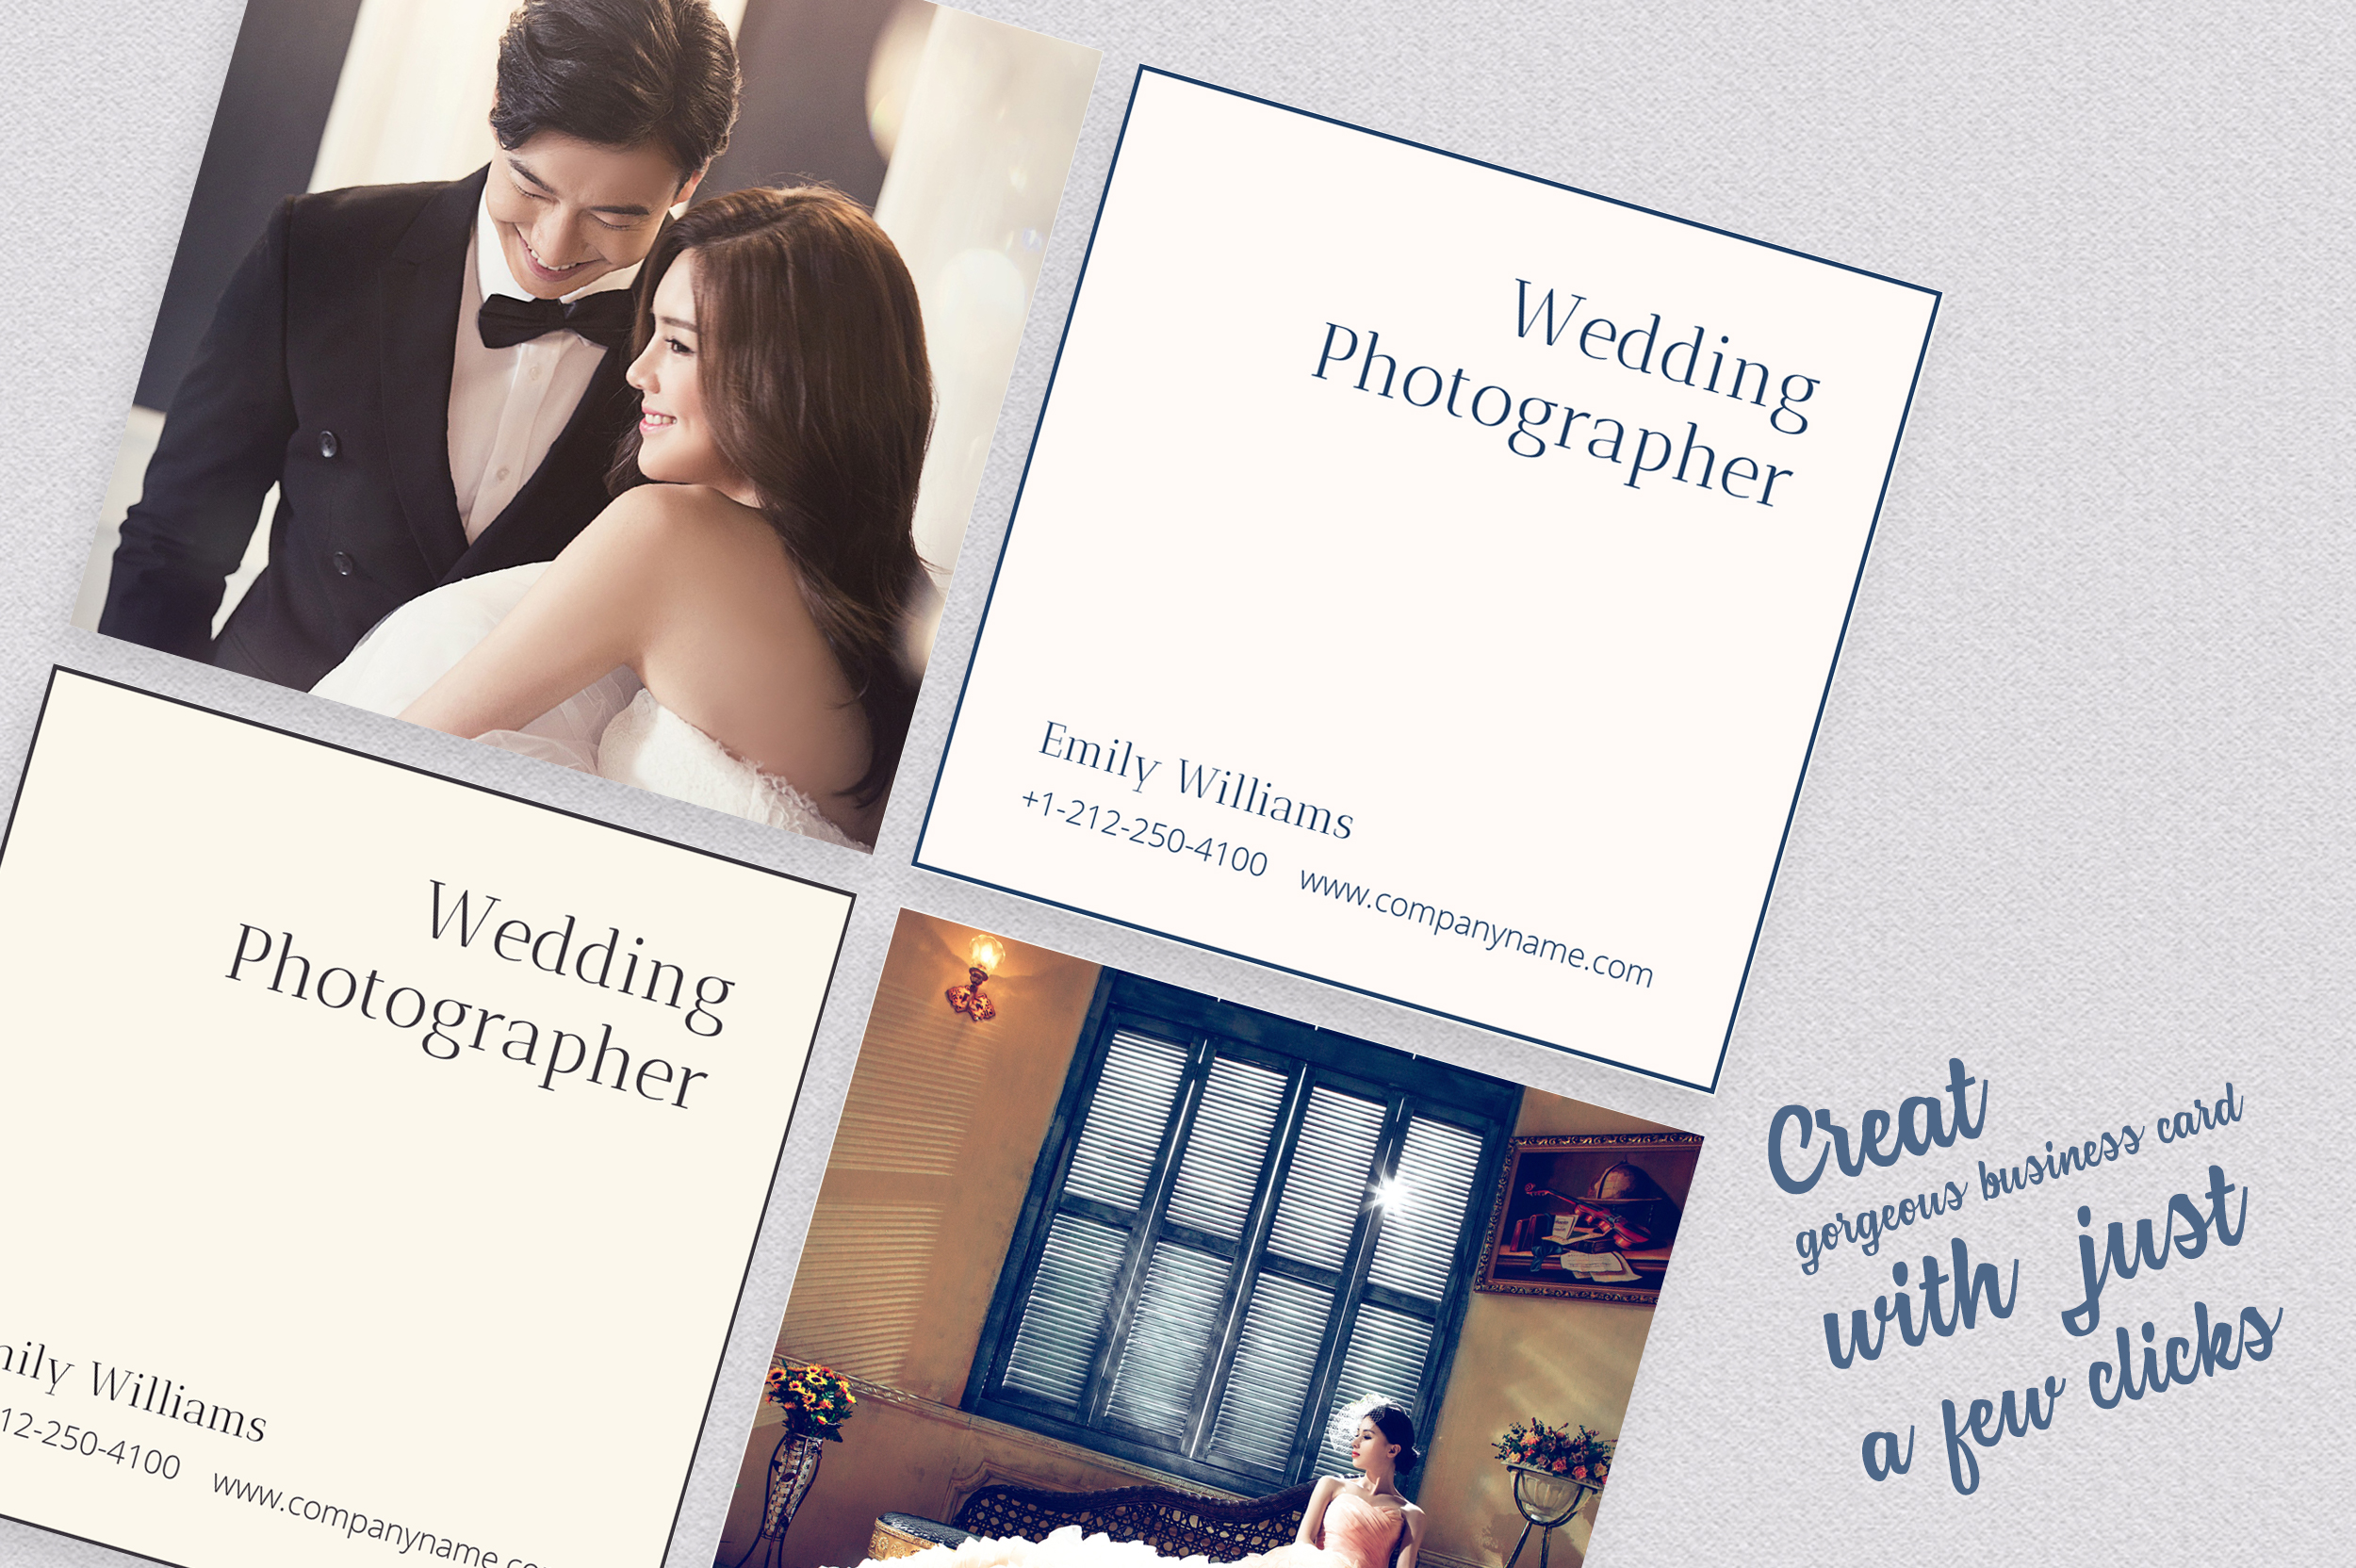 Wedding Photography Business Card example image 6